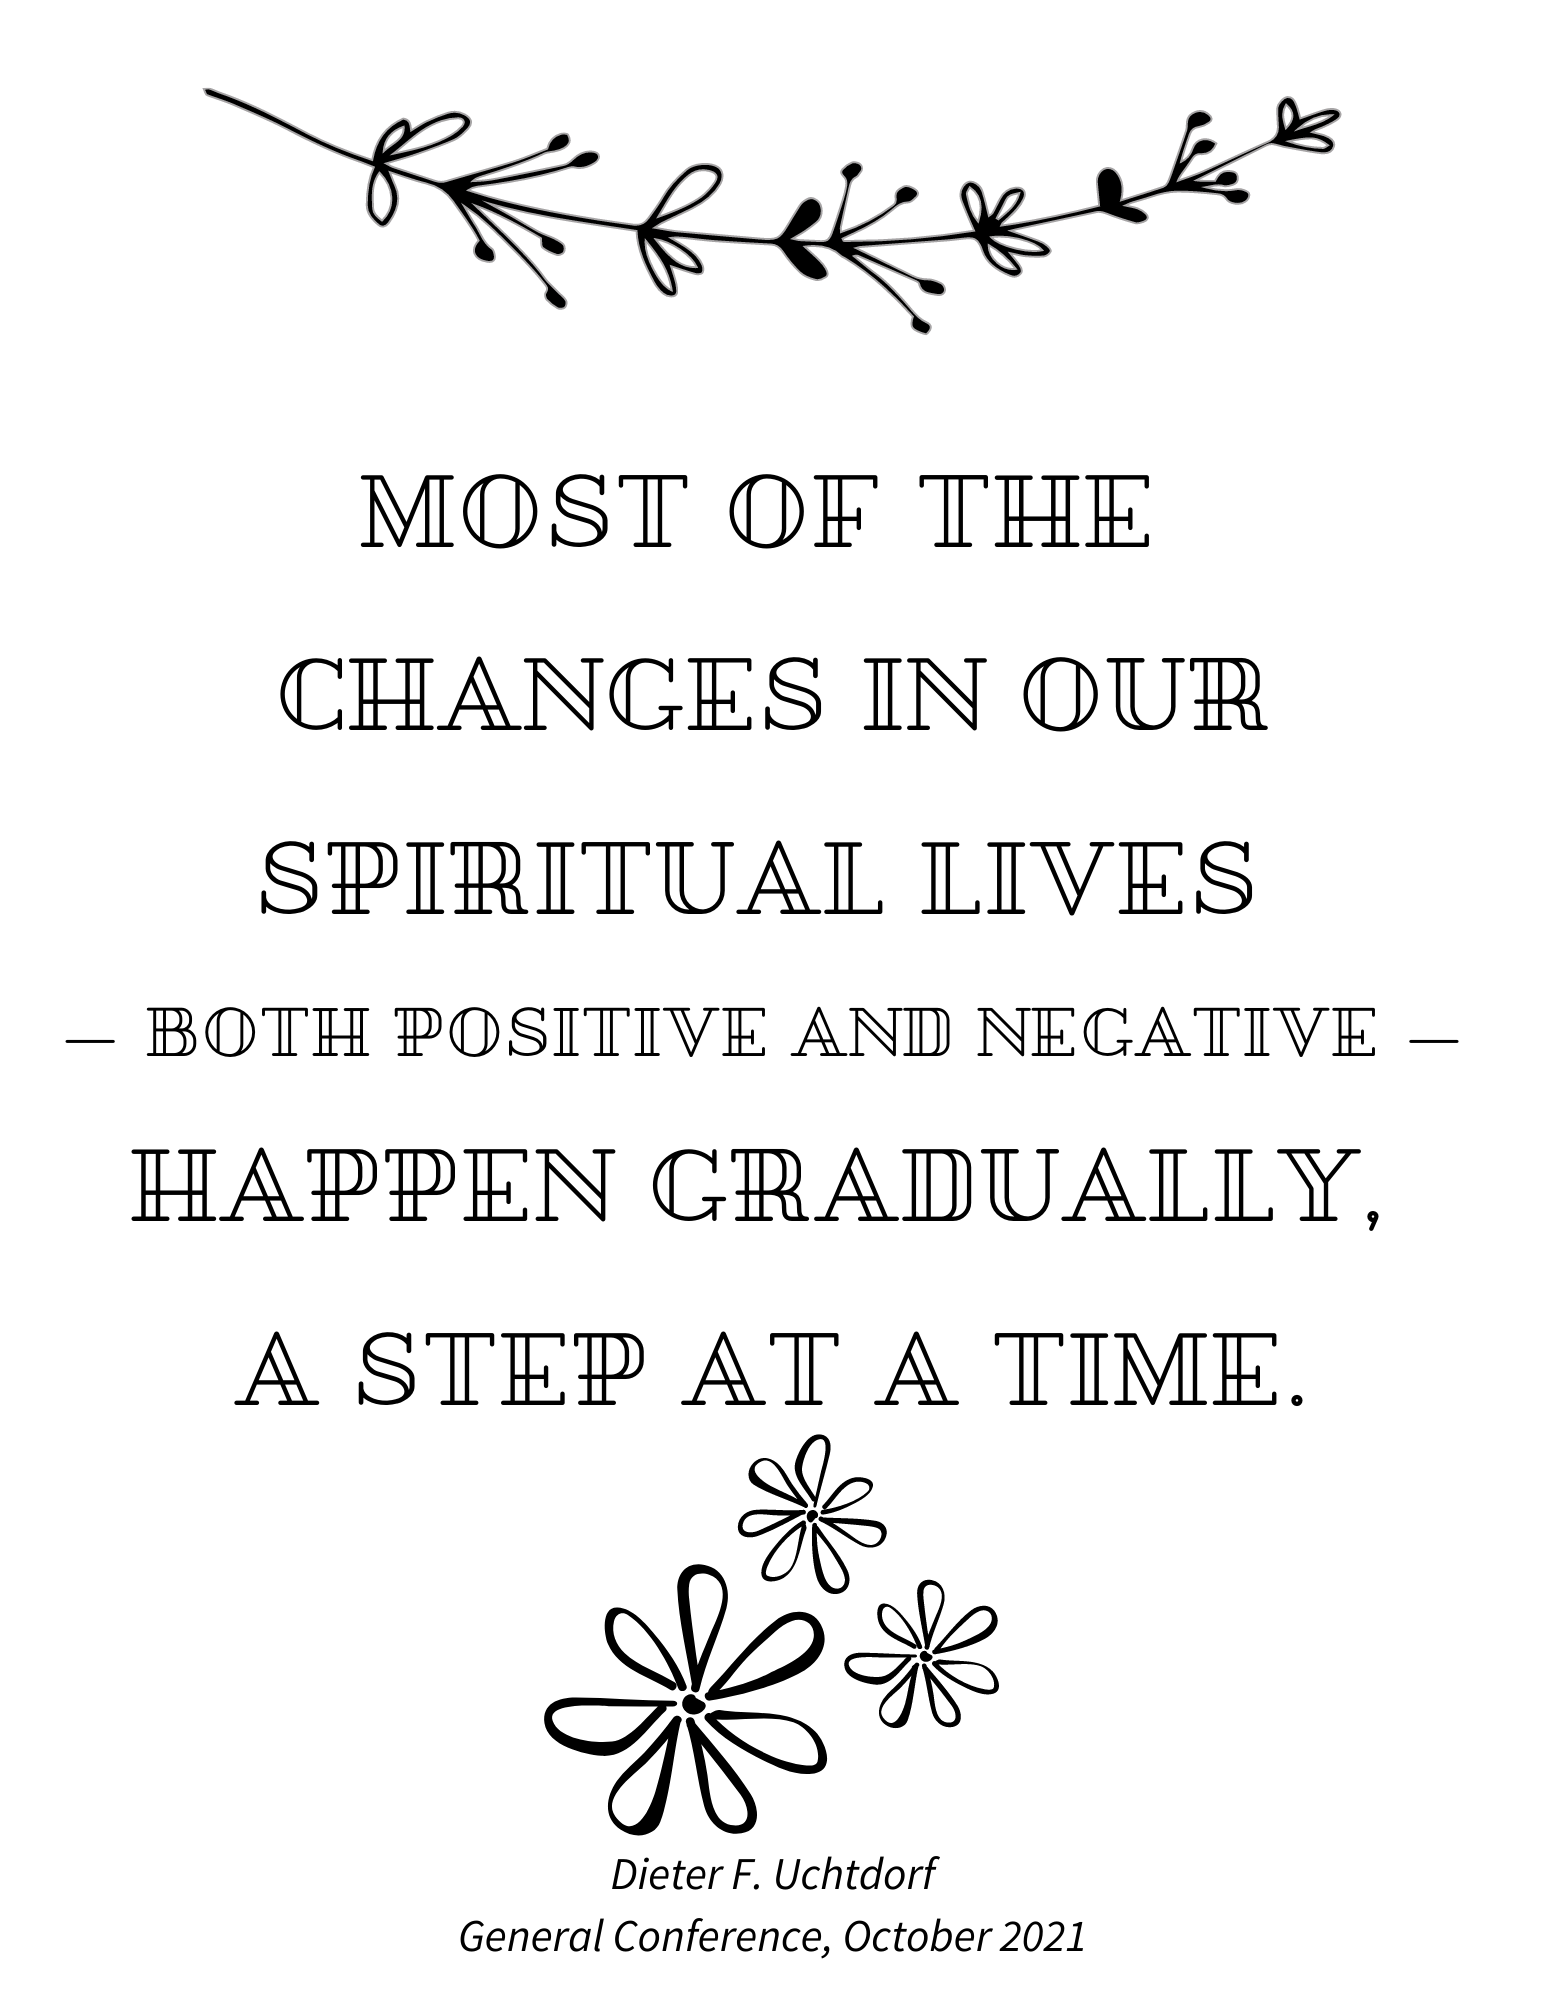 general conference quotes, Most of the changes in our spiritual lives both positive and negative happen gradually a step at a time Dieter F Uchtdorf October 2021 general conference quote